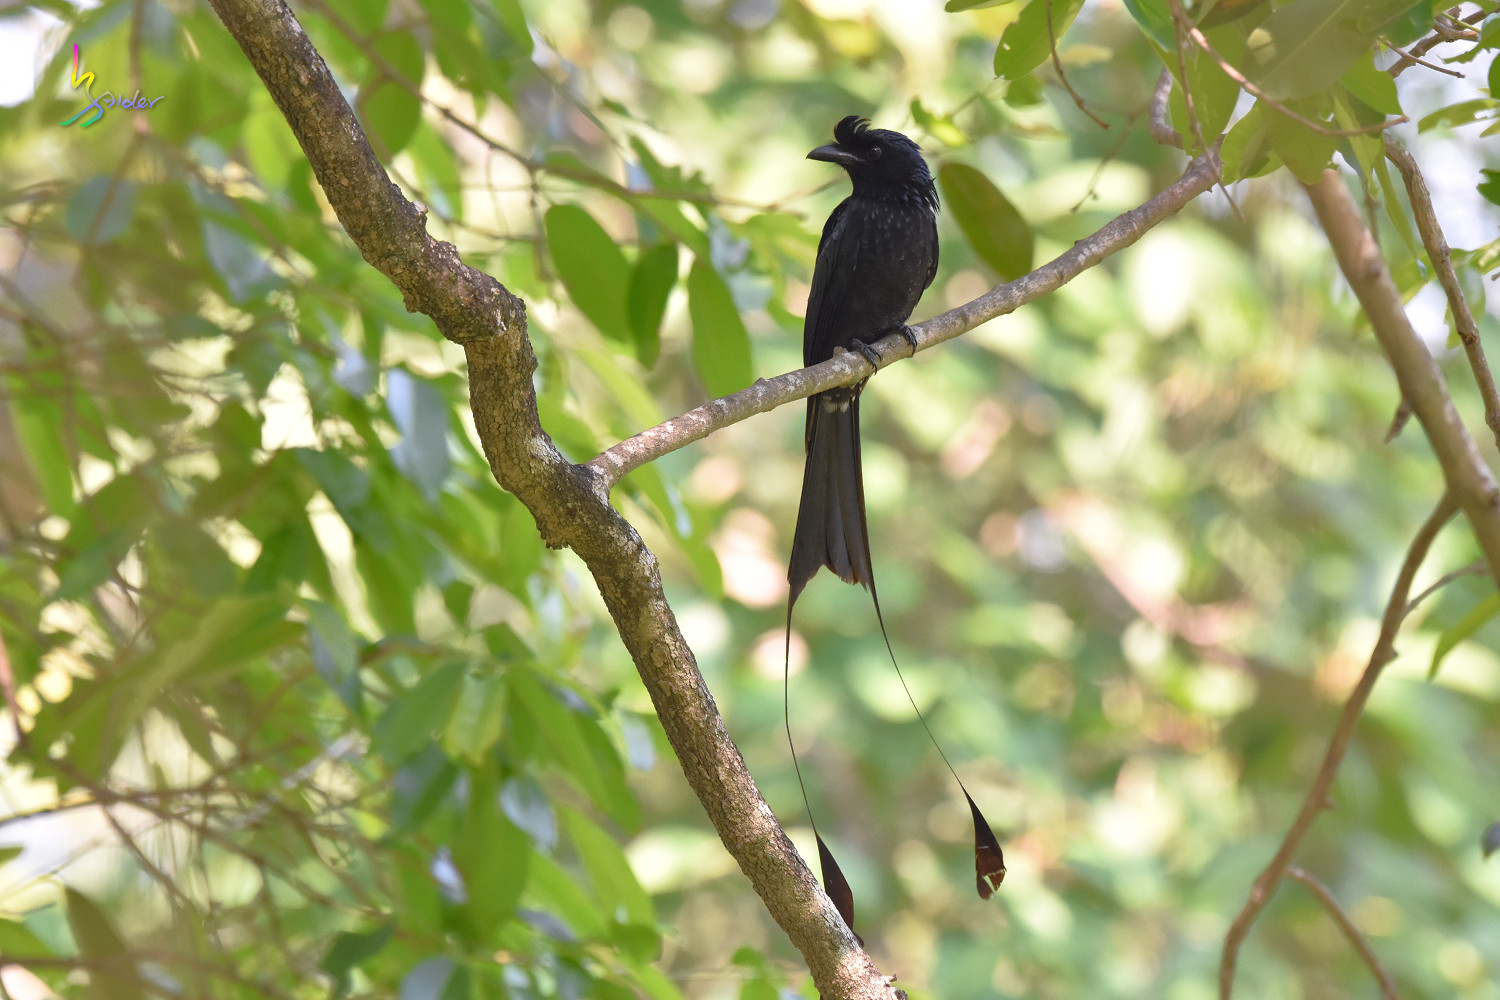 Greater_Racket-tailed_Drongo_7531